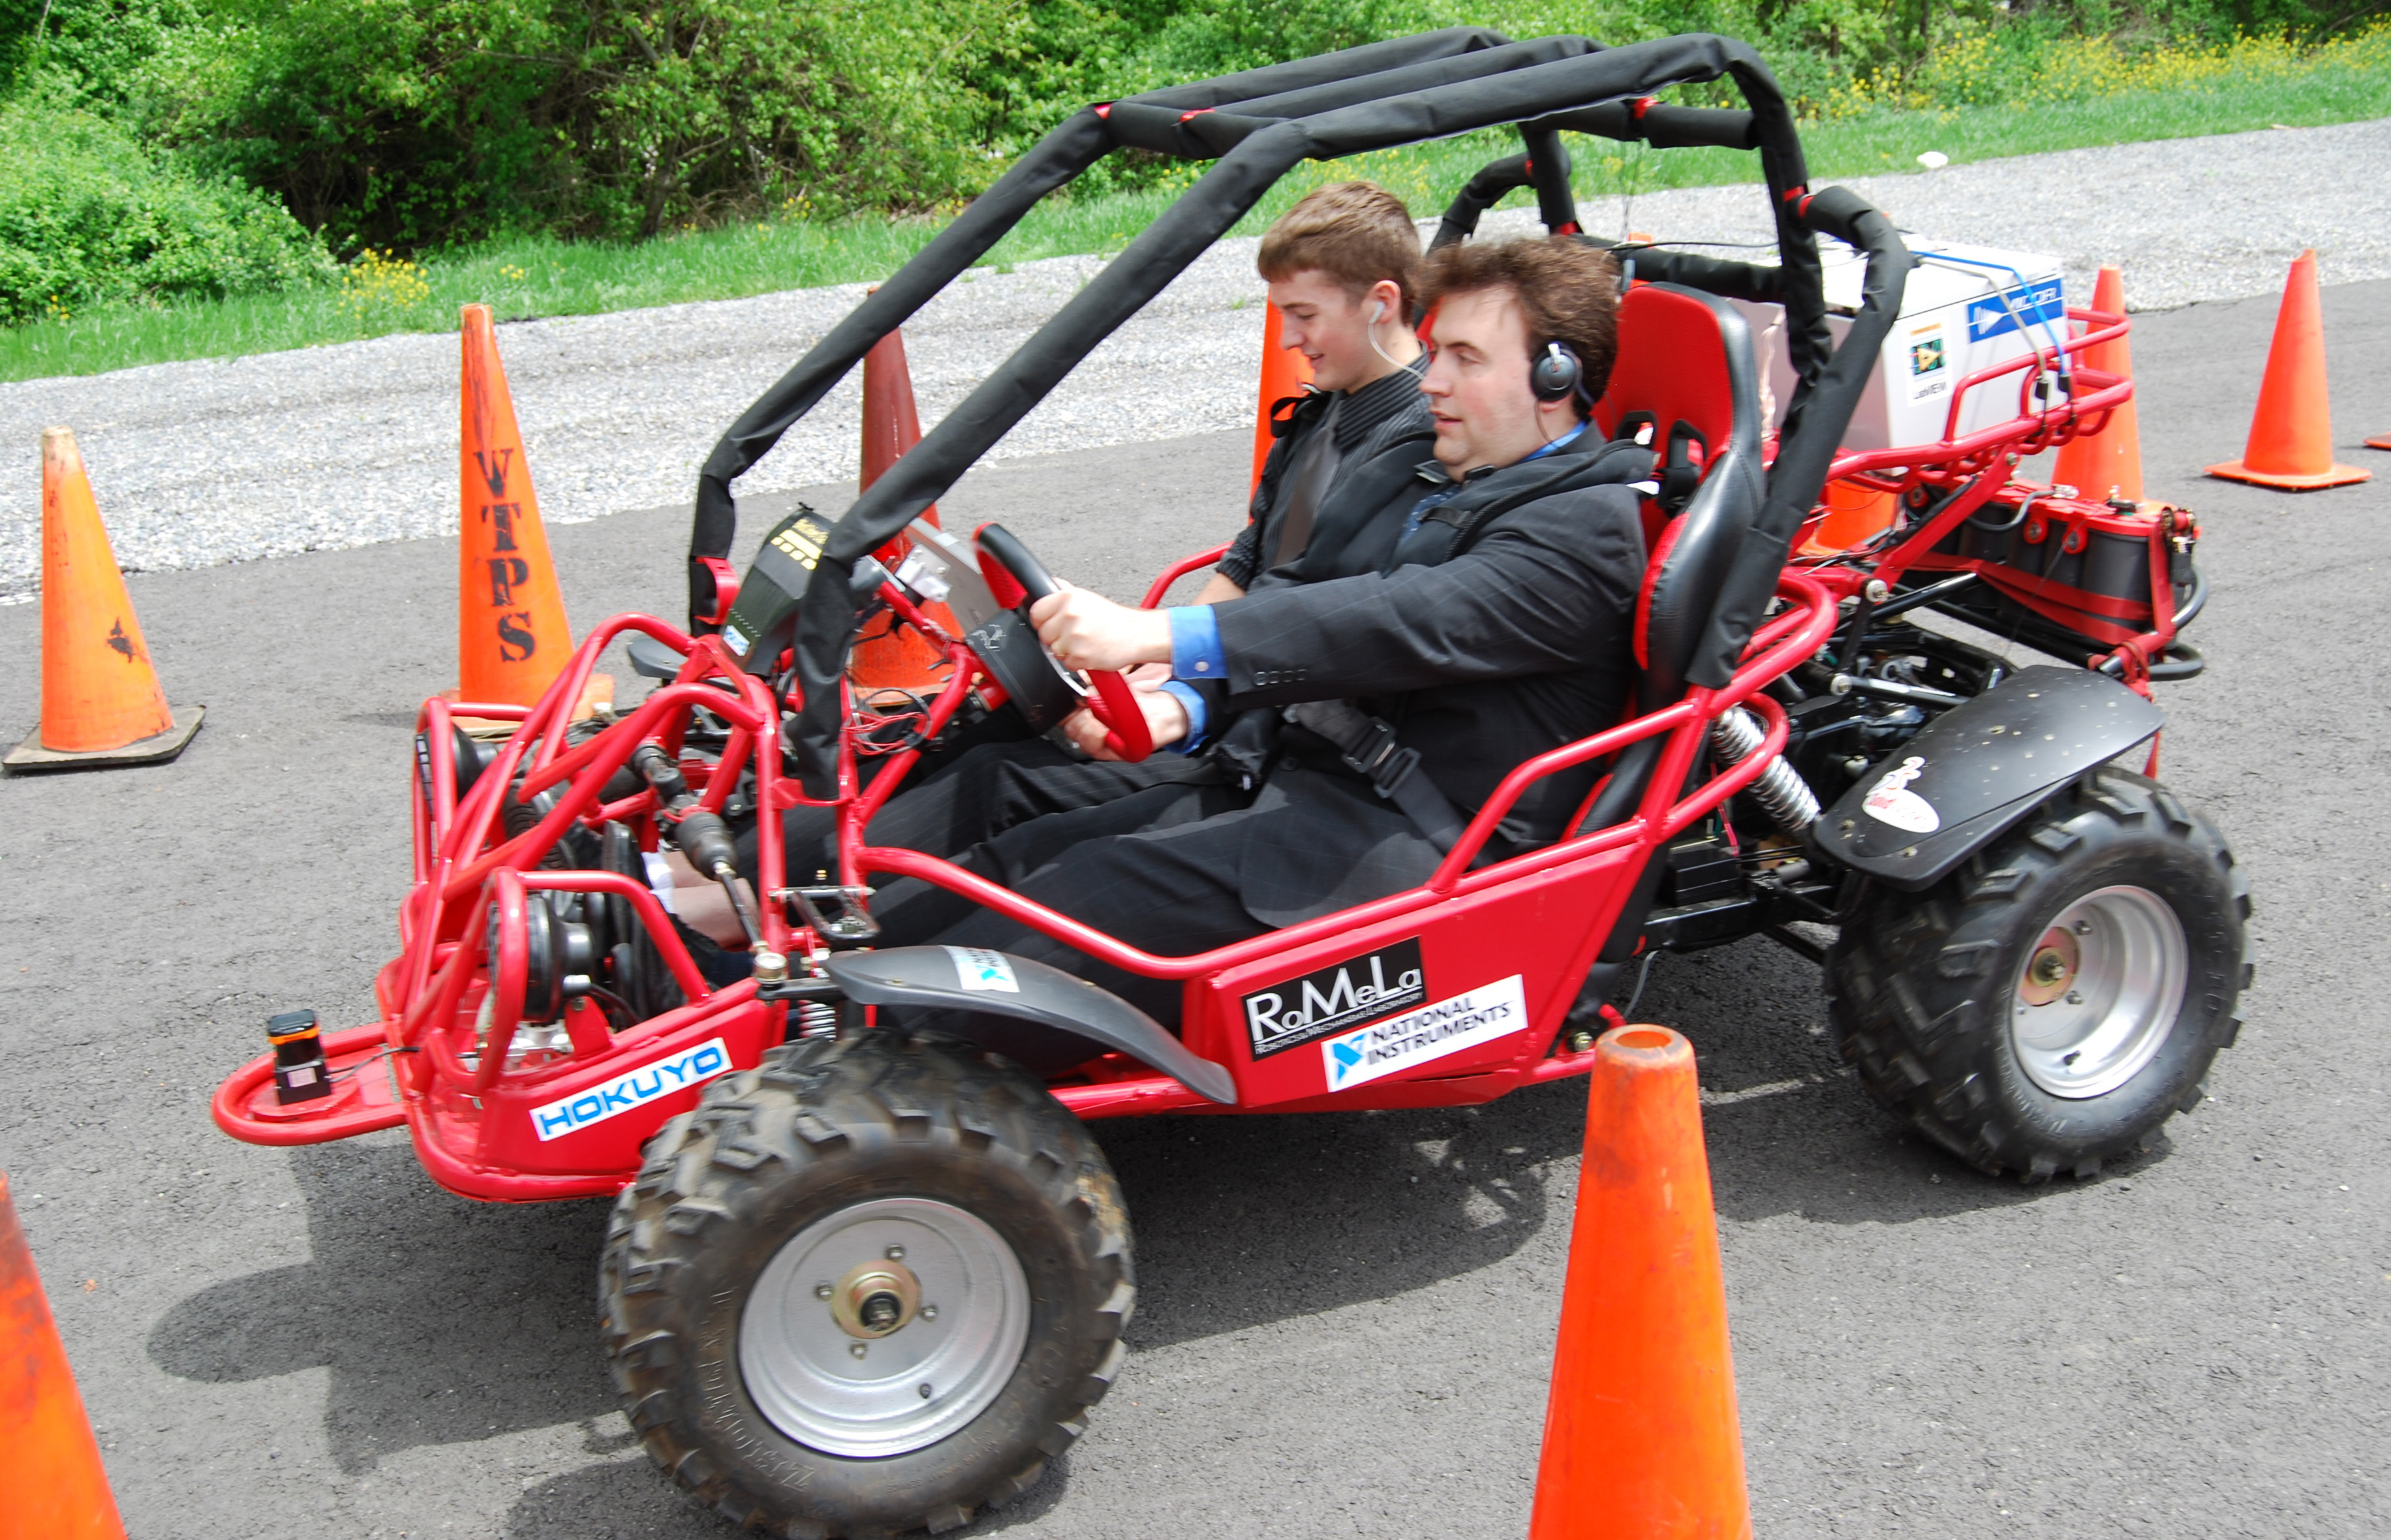 Mark Riccobono, executive director of the National Federation of the Blind's Jernigan Institute, drives the Virginia Tech Blind Driver Challenge vehicle through an obstacle course of traffic cones on a campus parking lot. In the passenger seat is Greg Jannaman, who led the student team within the mechanical engineering department during the past year, and is monitoring the software of the vehicle..